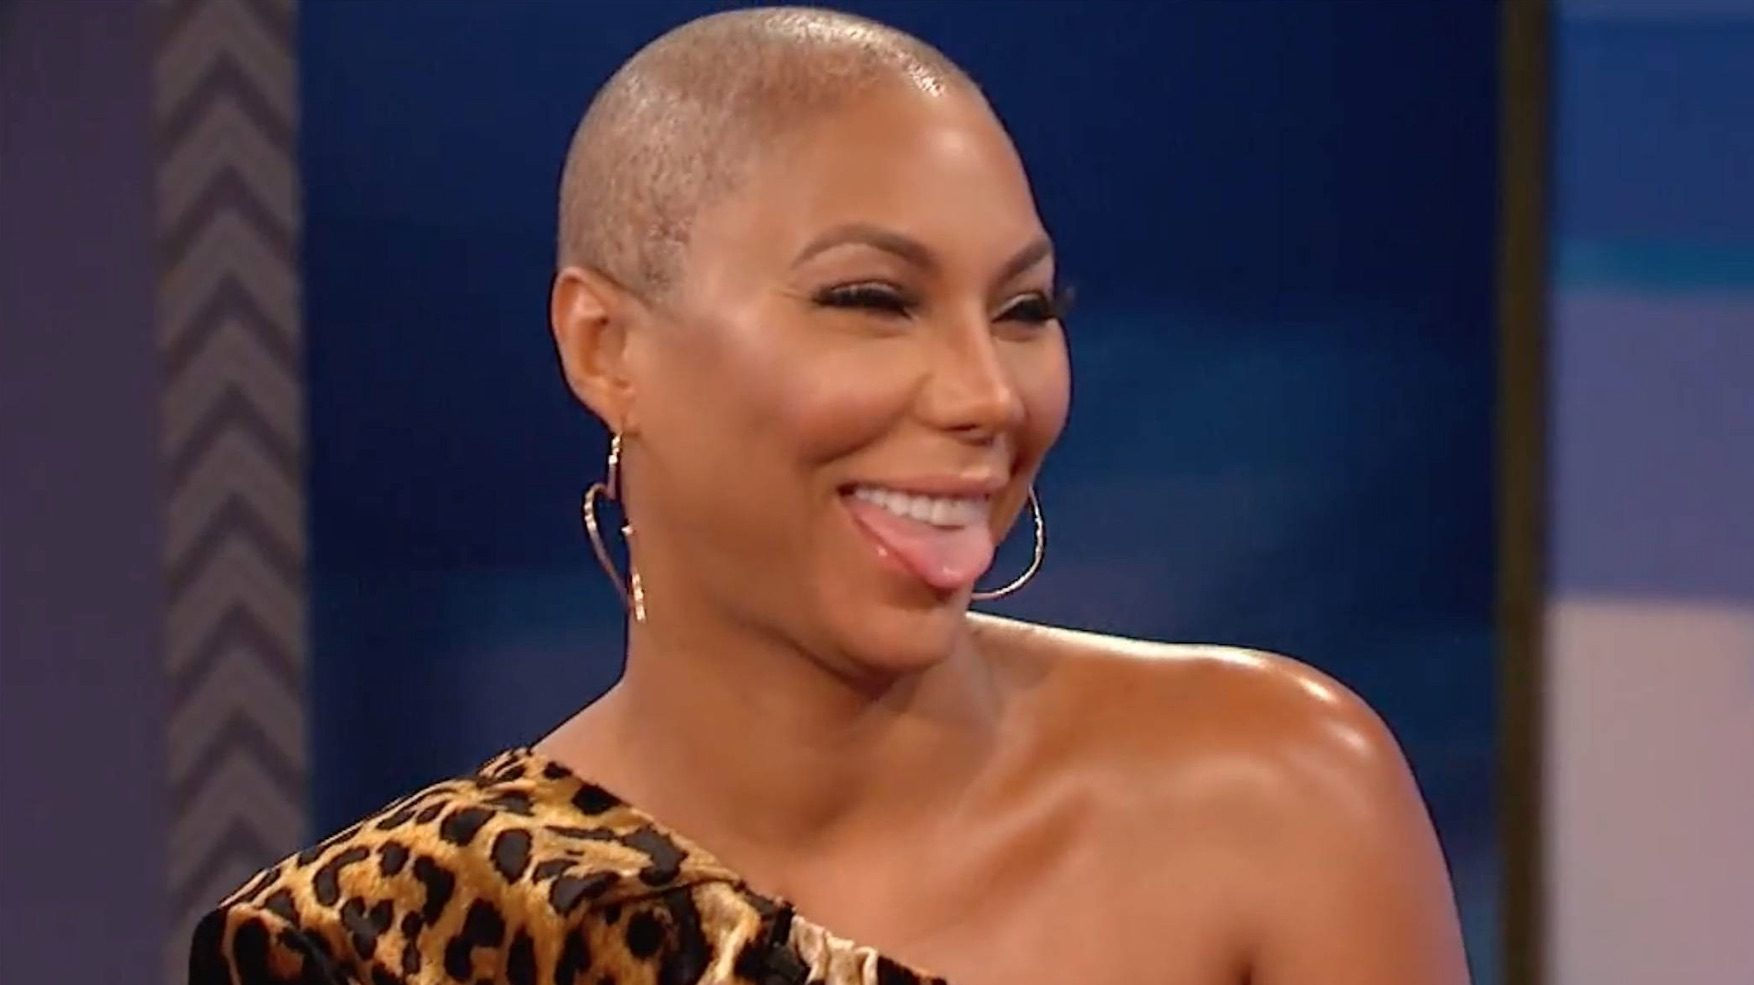 tamar-braxton-shares-a-video-with-a-pole-dance-and-addresses-body-shamers-who-called-her-out-for-having-cellulite-she-said-her-bf-david-likes-her-thick